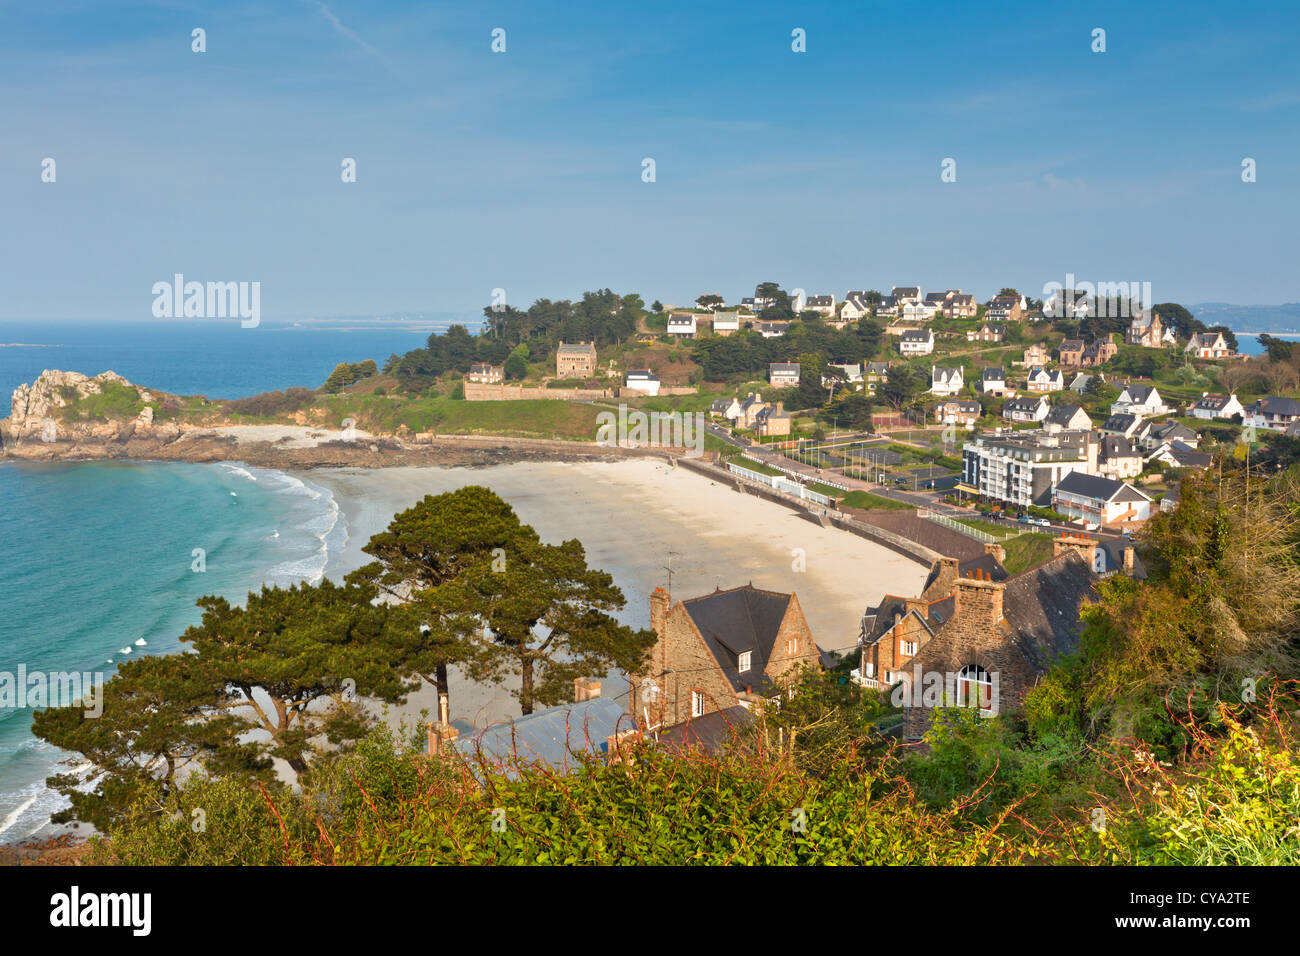 Perros-Guirec, small town in Western Brittany, France, aerial view Stock Photo